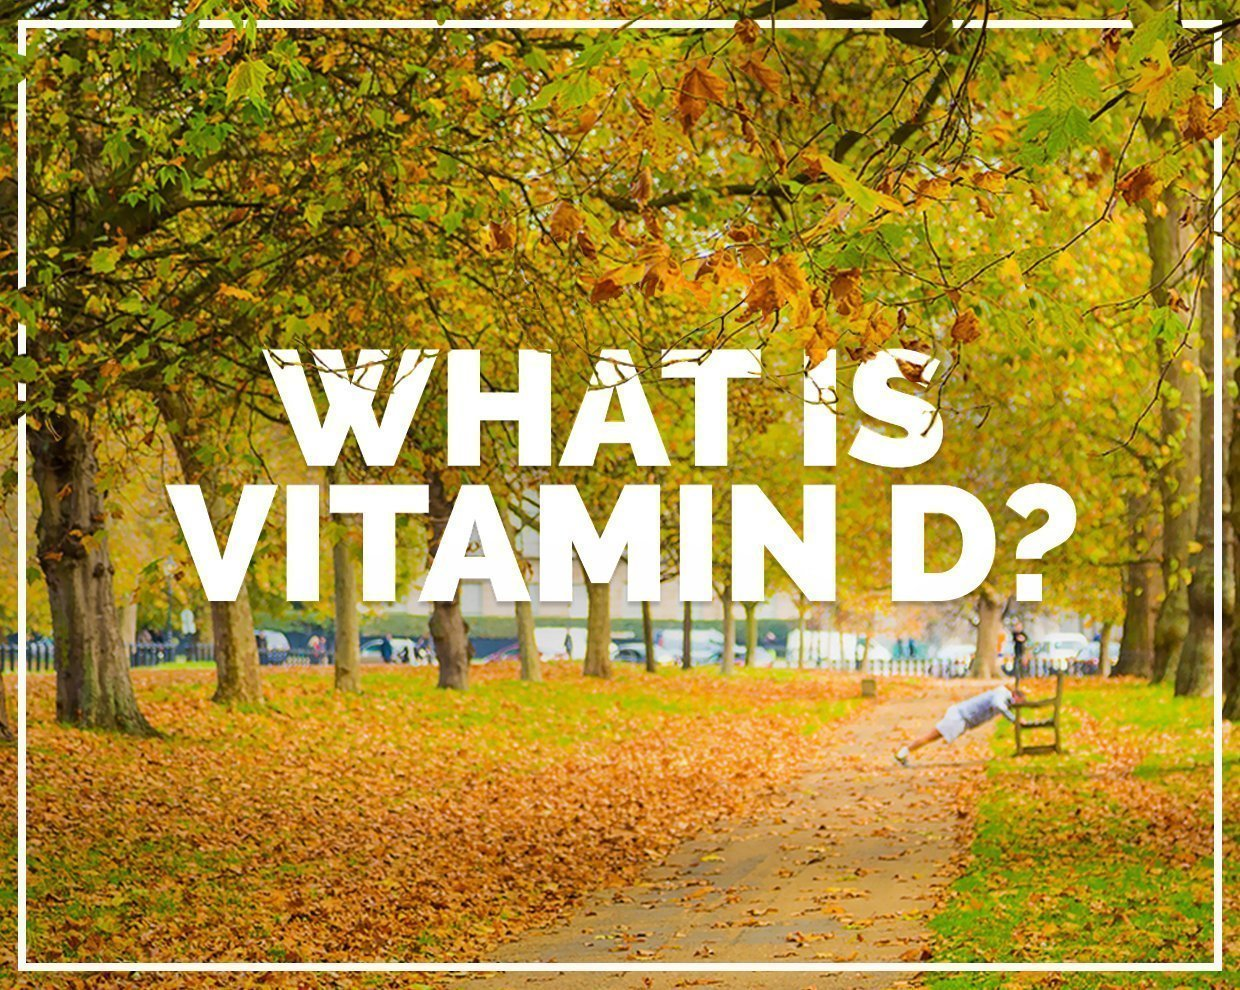 Vitamin D - are you deficient?